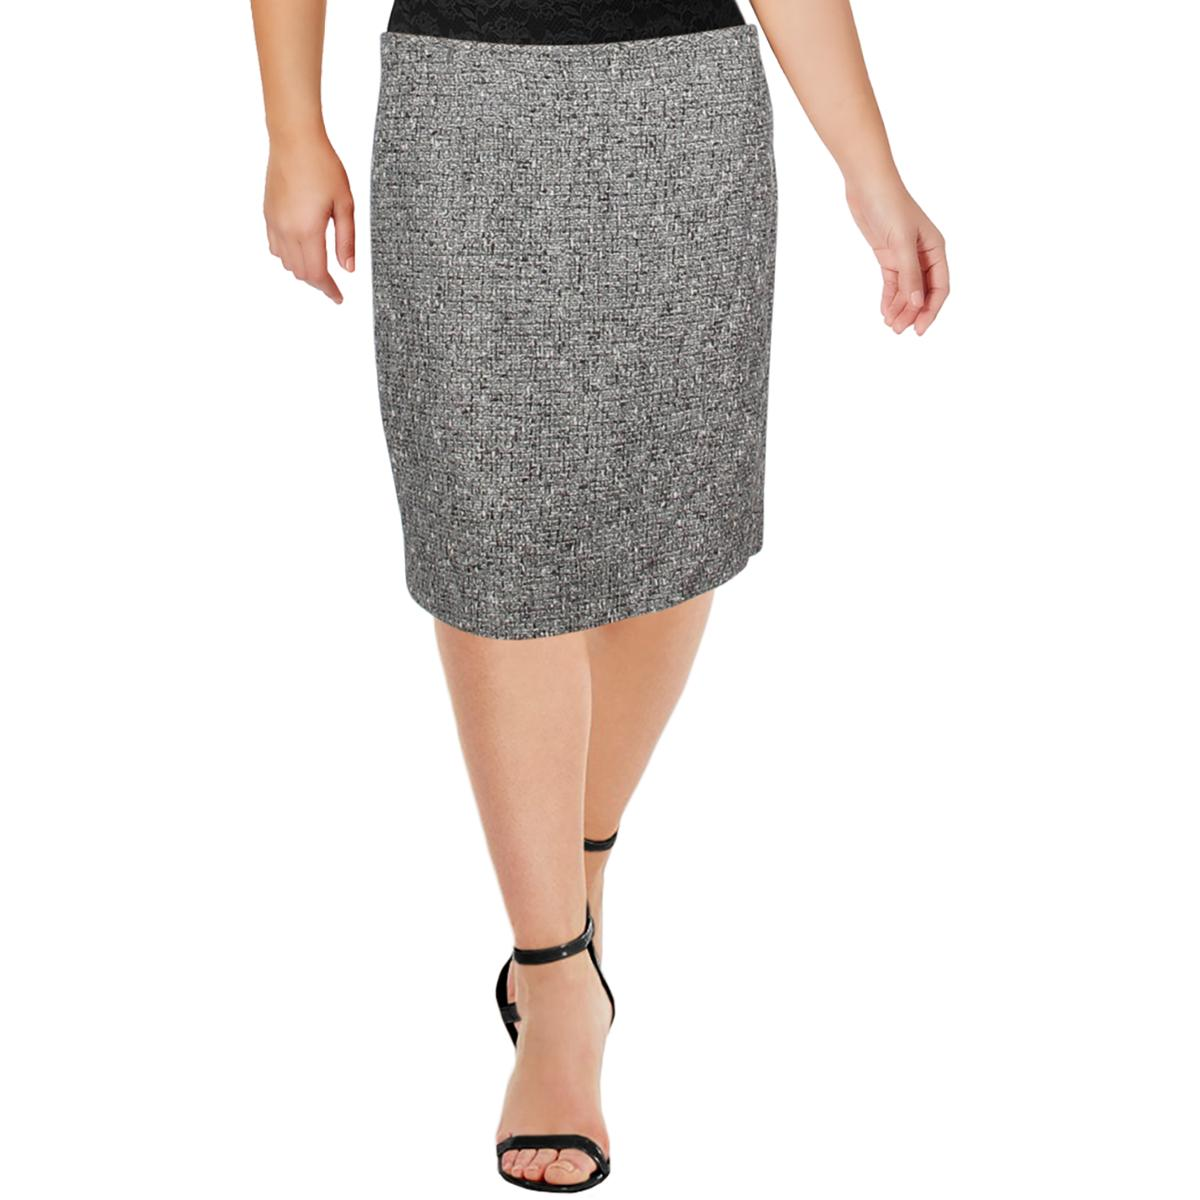 Tahari ASL Womens Black-Ivory Boucle Work Wear Pencil Skirt Plus 18 BHFO 9009